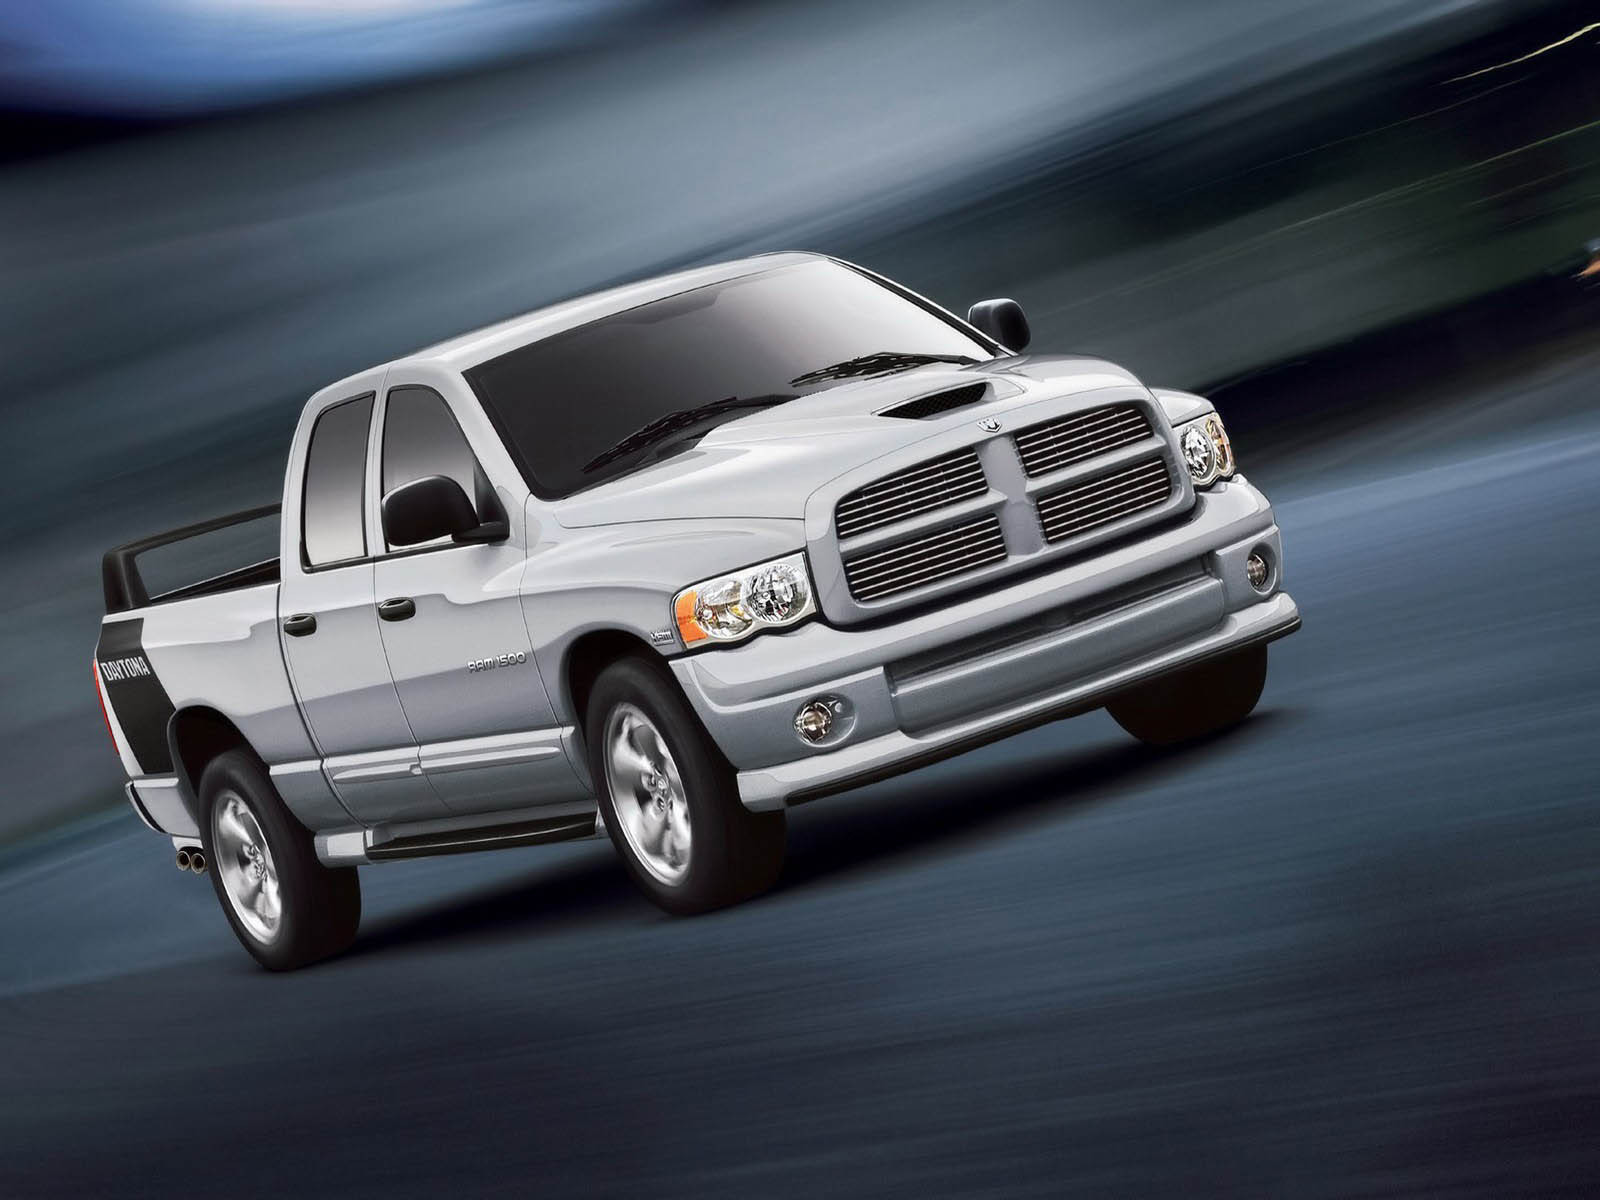 2005 Dodge Ram Daytona | Top Speed